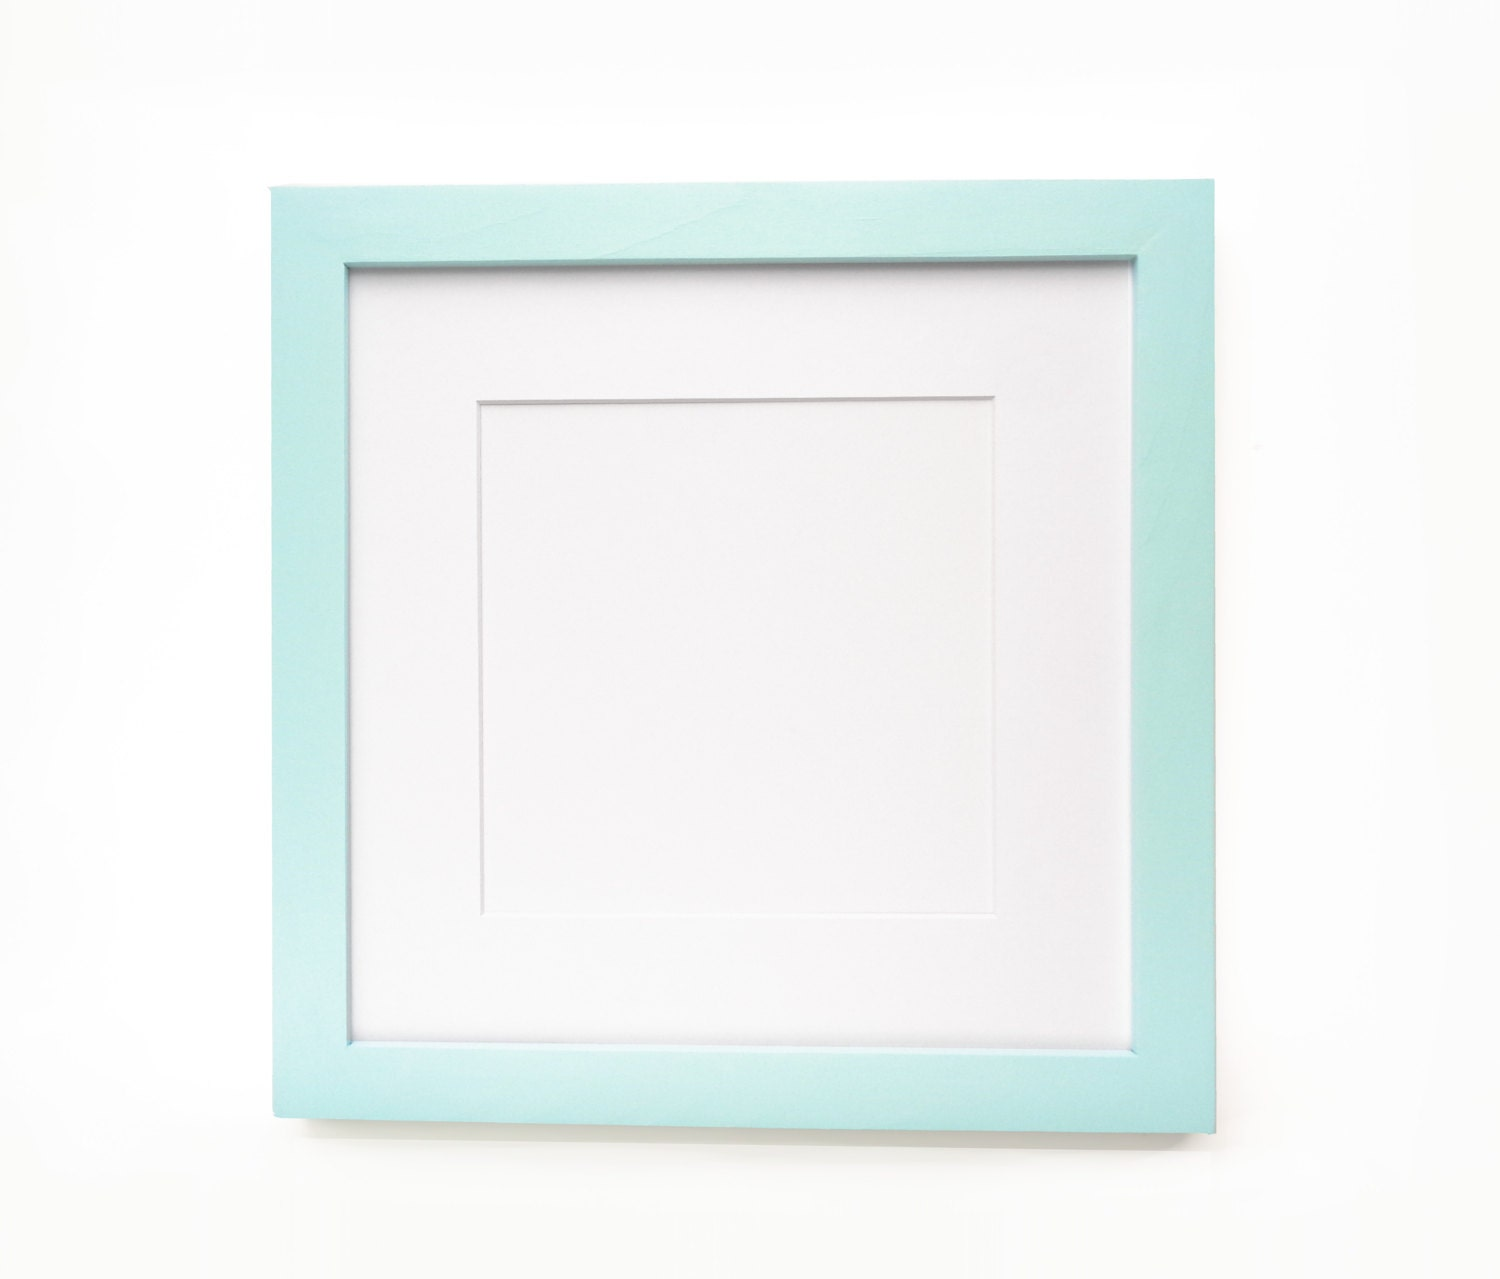 12x12 Frame Mint Picture Frame For 12x12 Art Tiles